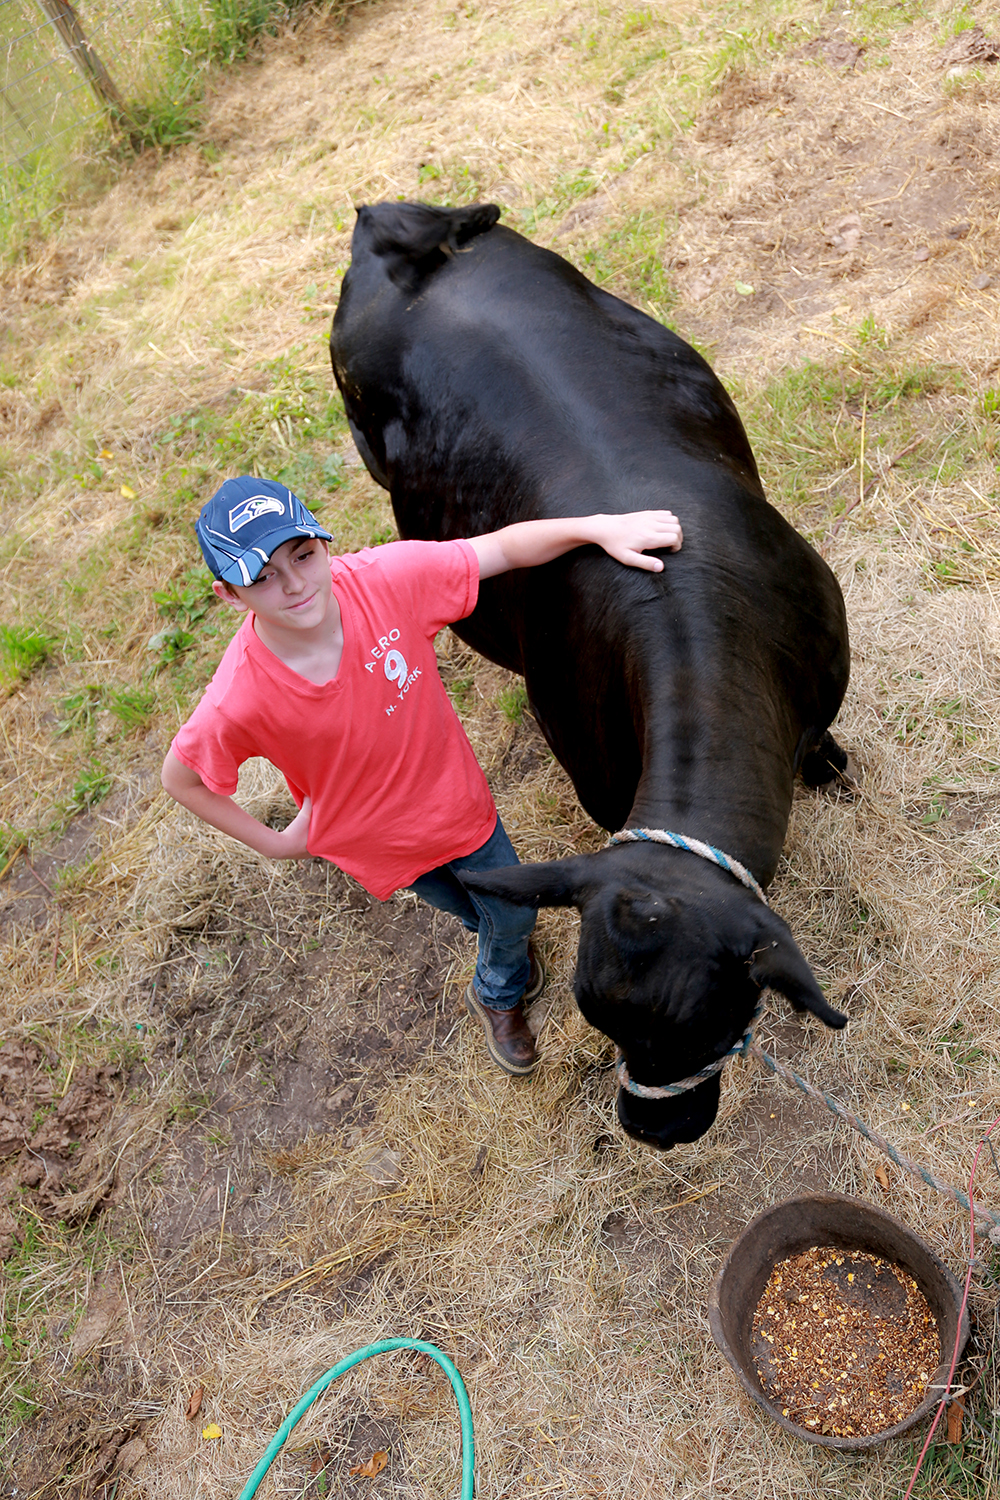 Kyle Brown stands with his steer, Cash, whom he named for the reason why he raised the animal. Brown will show Cash at the Skagit County Fair where he will sell him for about $2 per pound or $4000.  Brooke Warren / Skagit Valley Herald